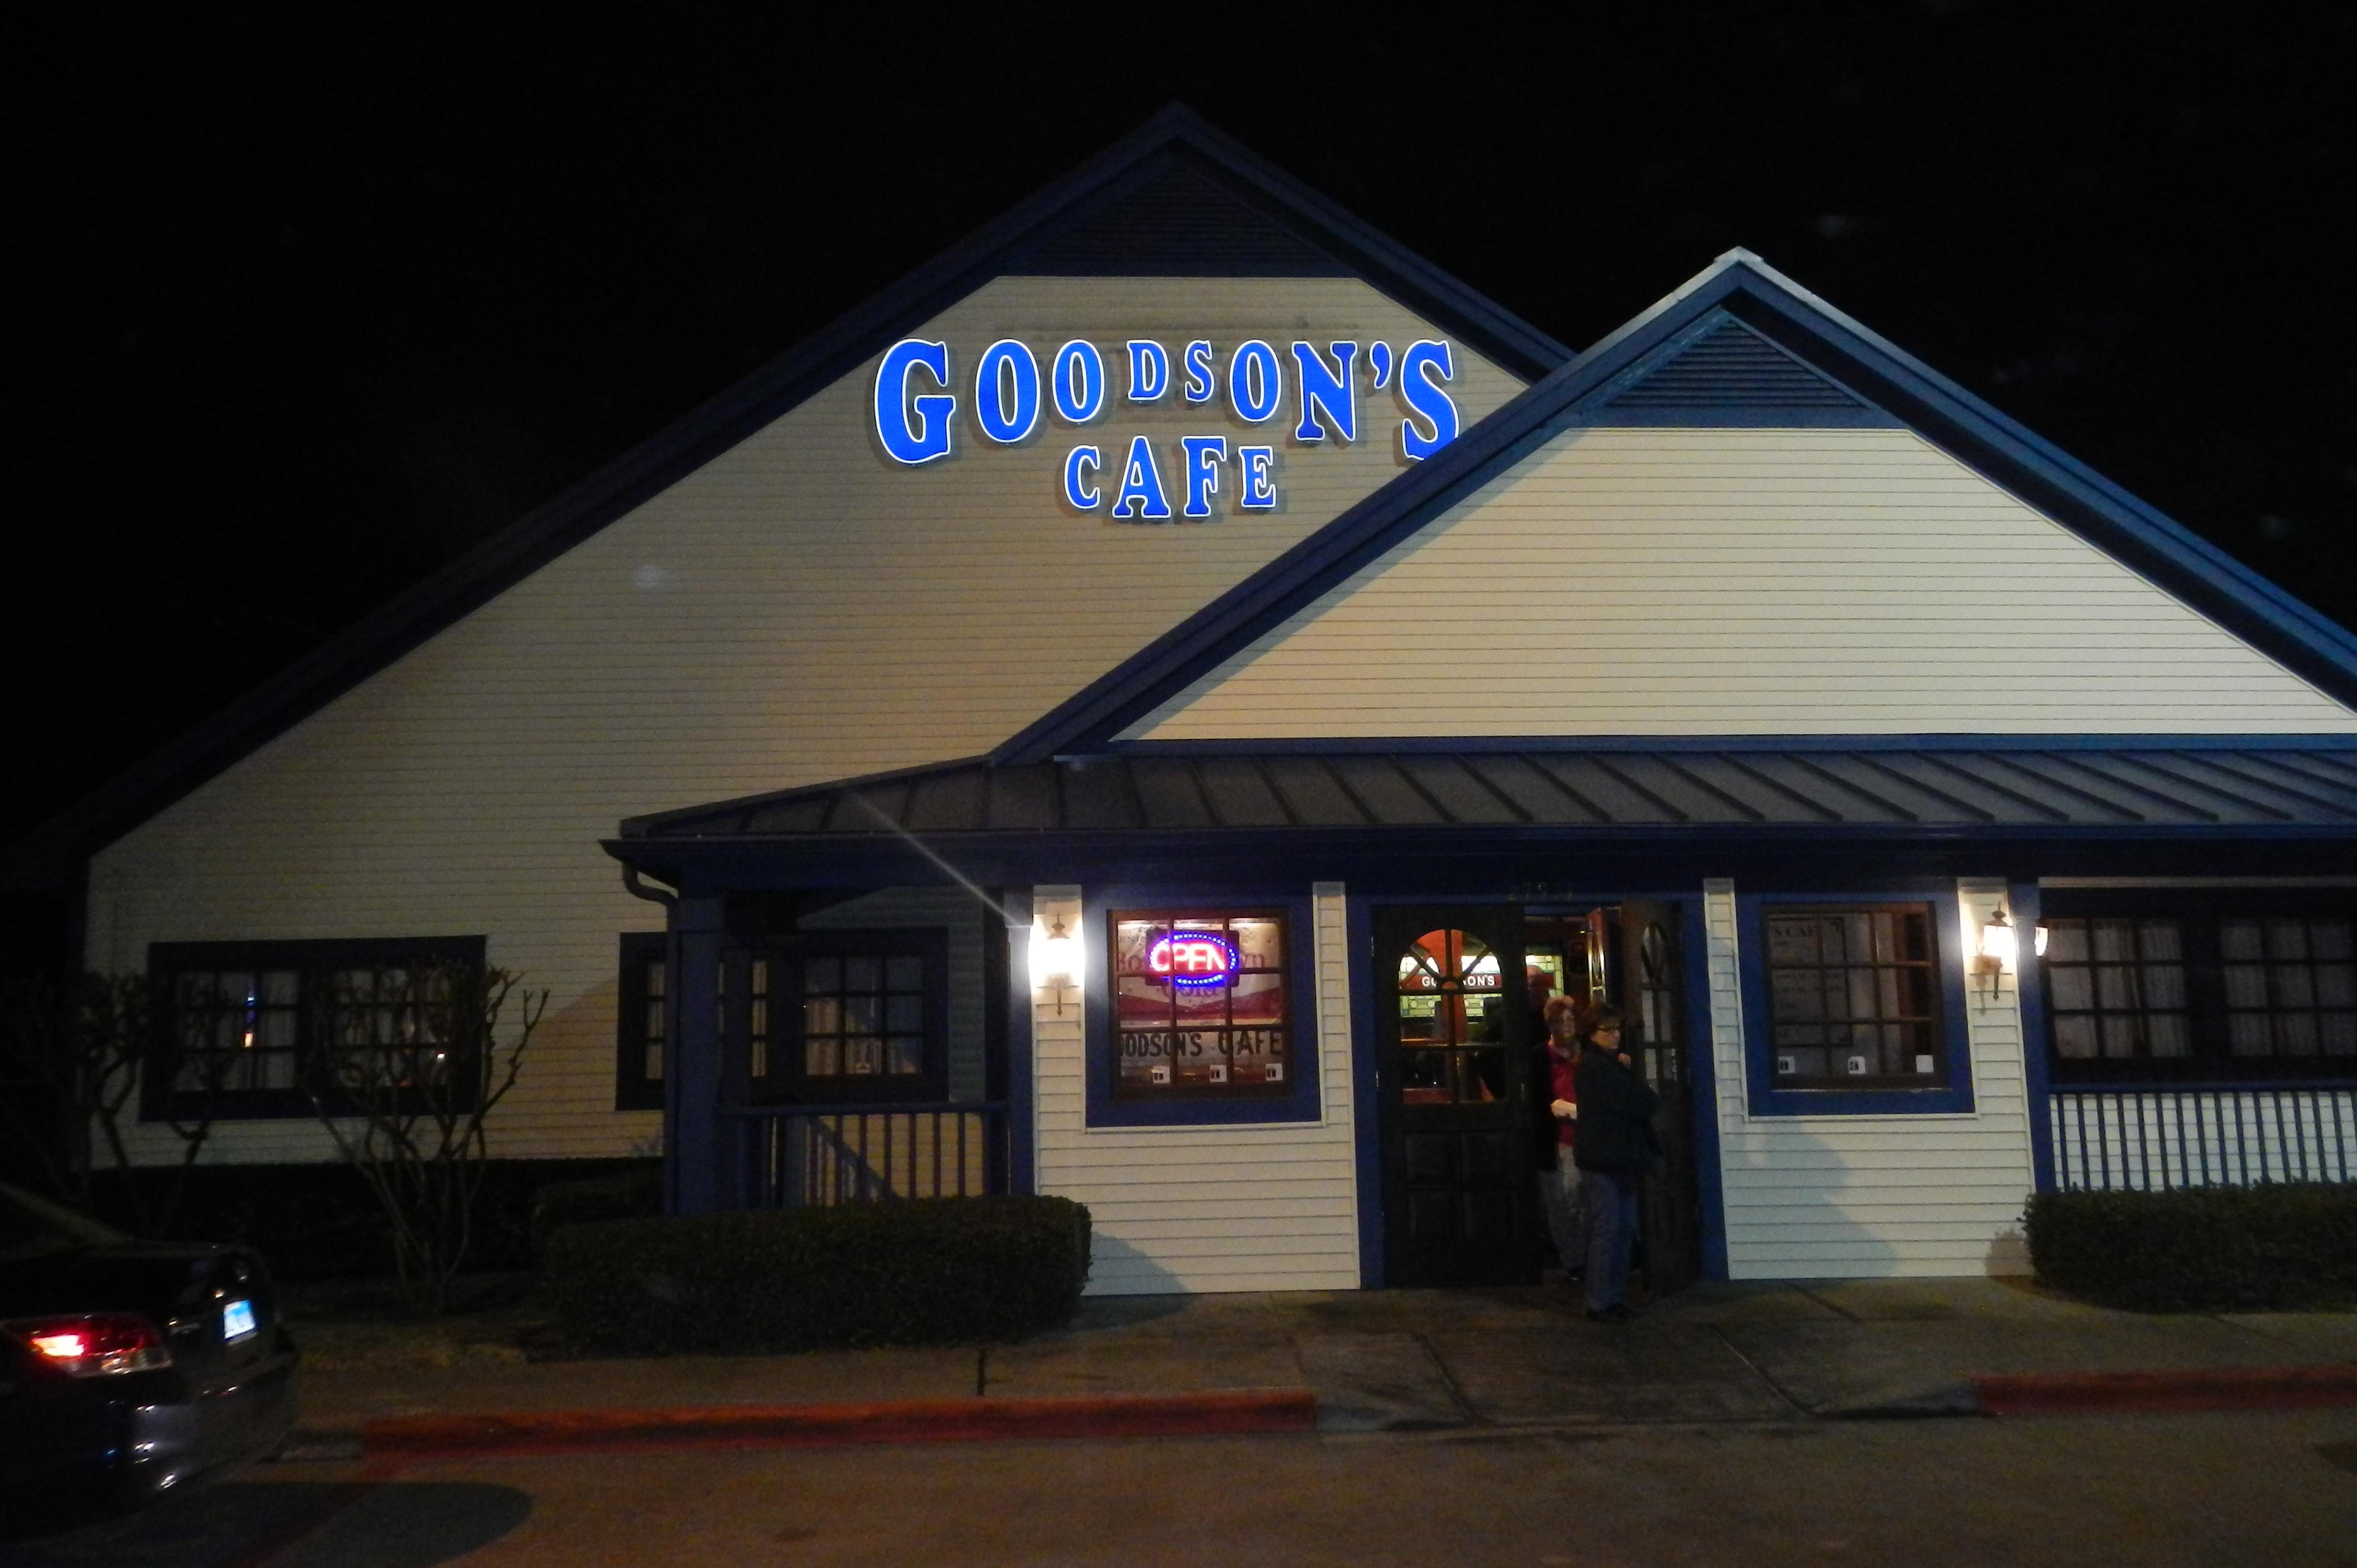 Goodson's Cafe in Tomball, TX